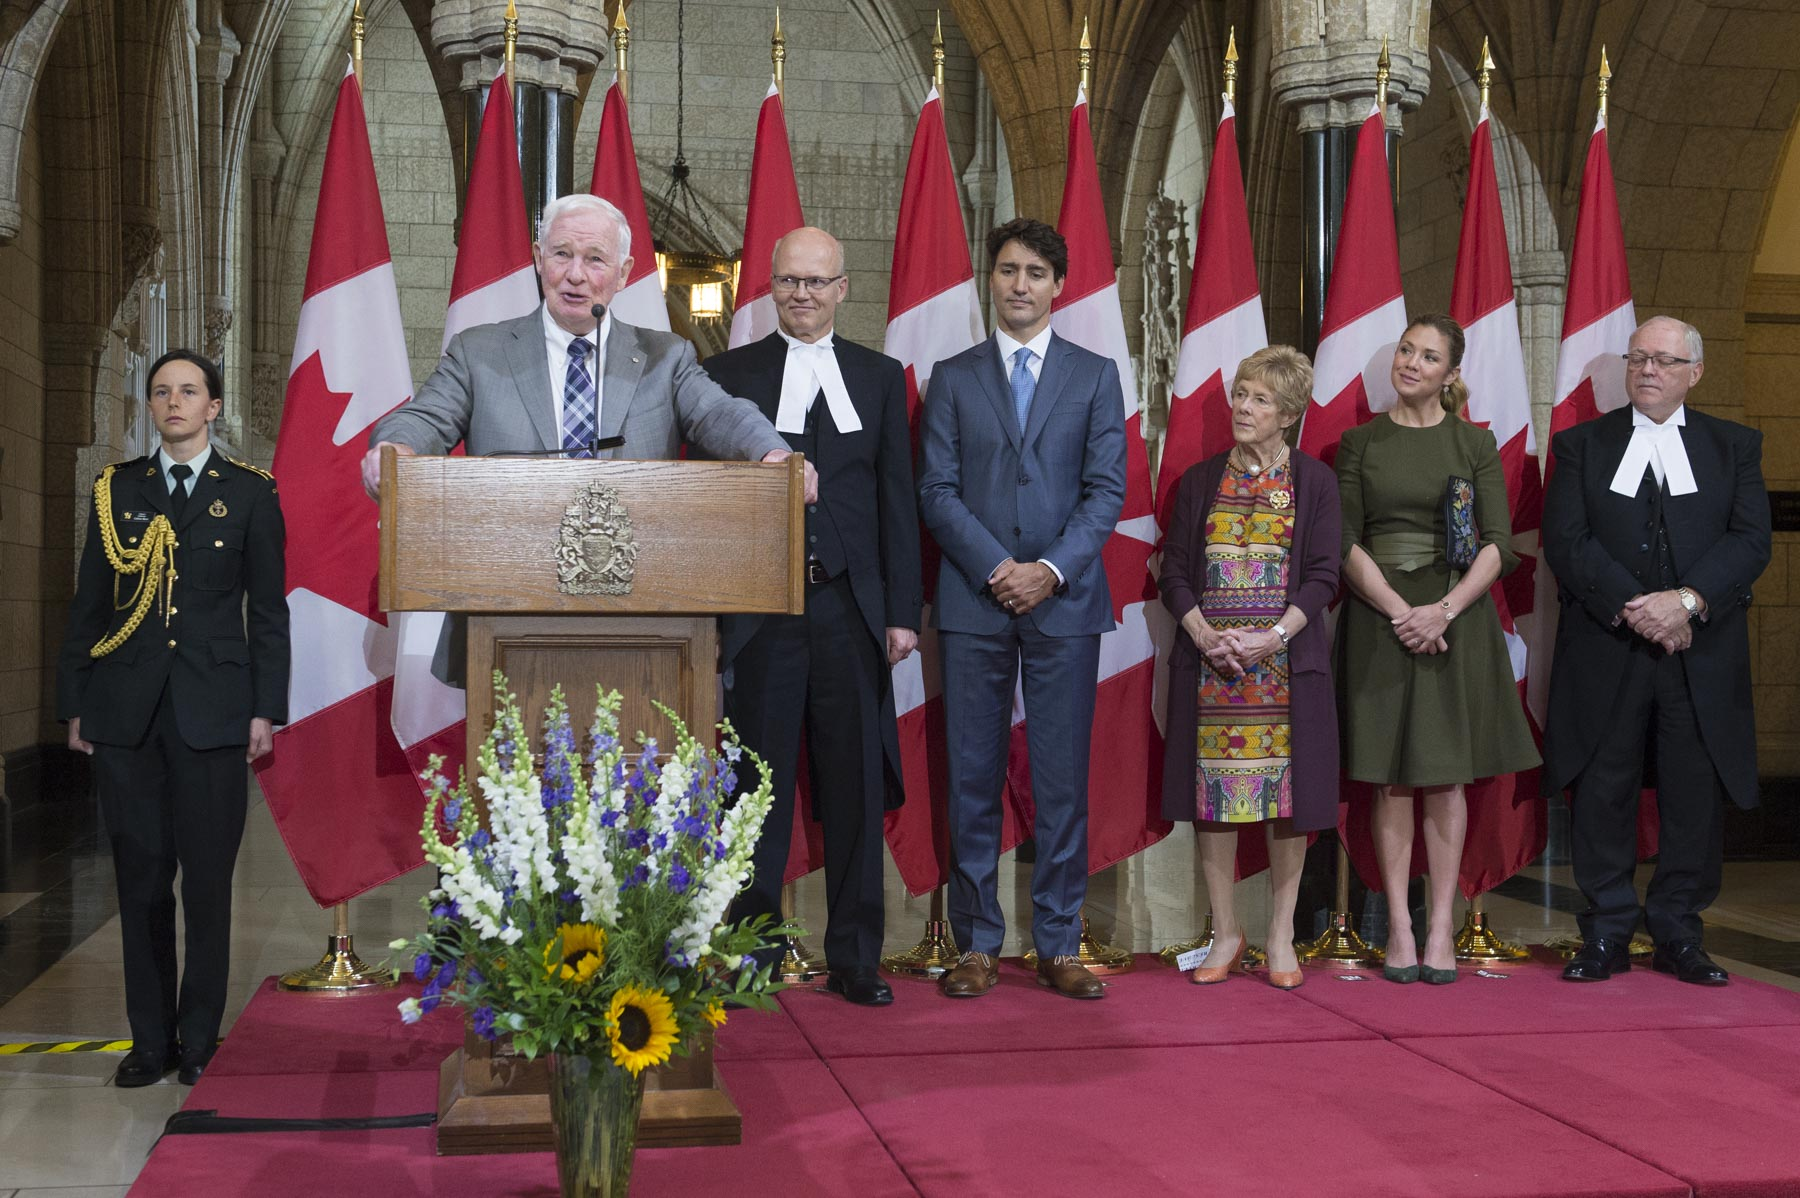 """Parliament is where we resolve issues through words, rather than force, and that is why your success as parliamentarians is so critical to the smarter, more caring Canada and the fairer, more just world of which we dream,"" said the Governor General."